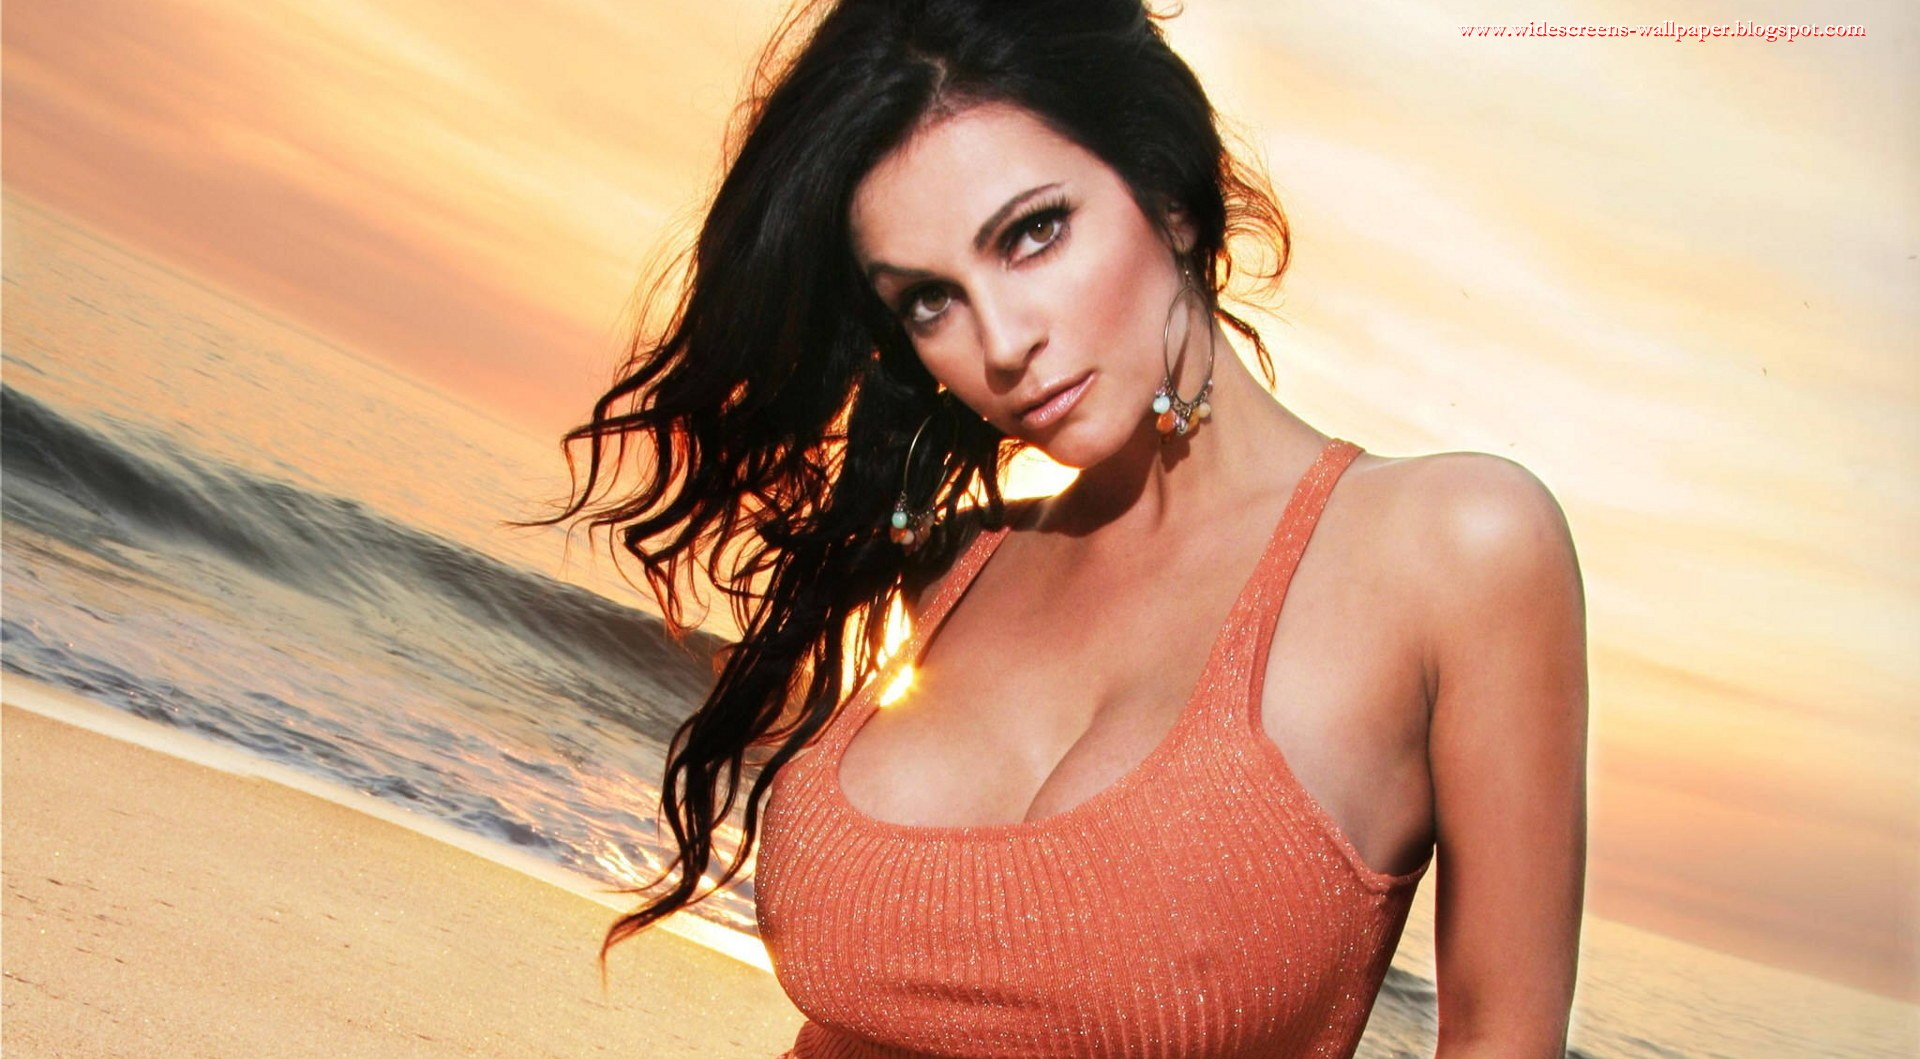 hot-and-sexy-denise-milani-wallpaper.jpg